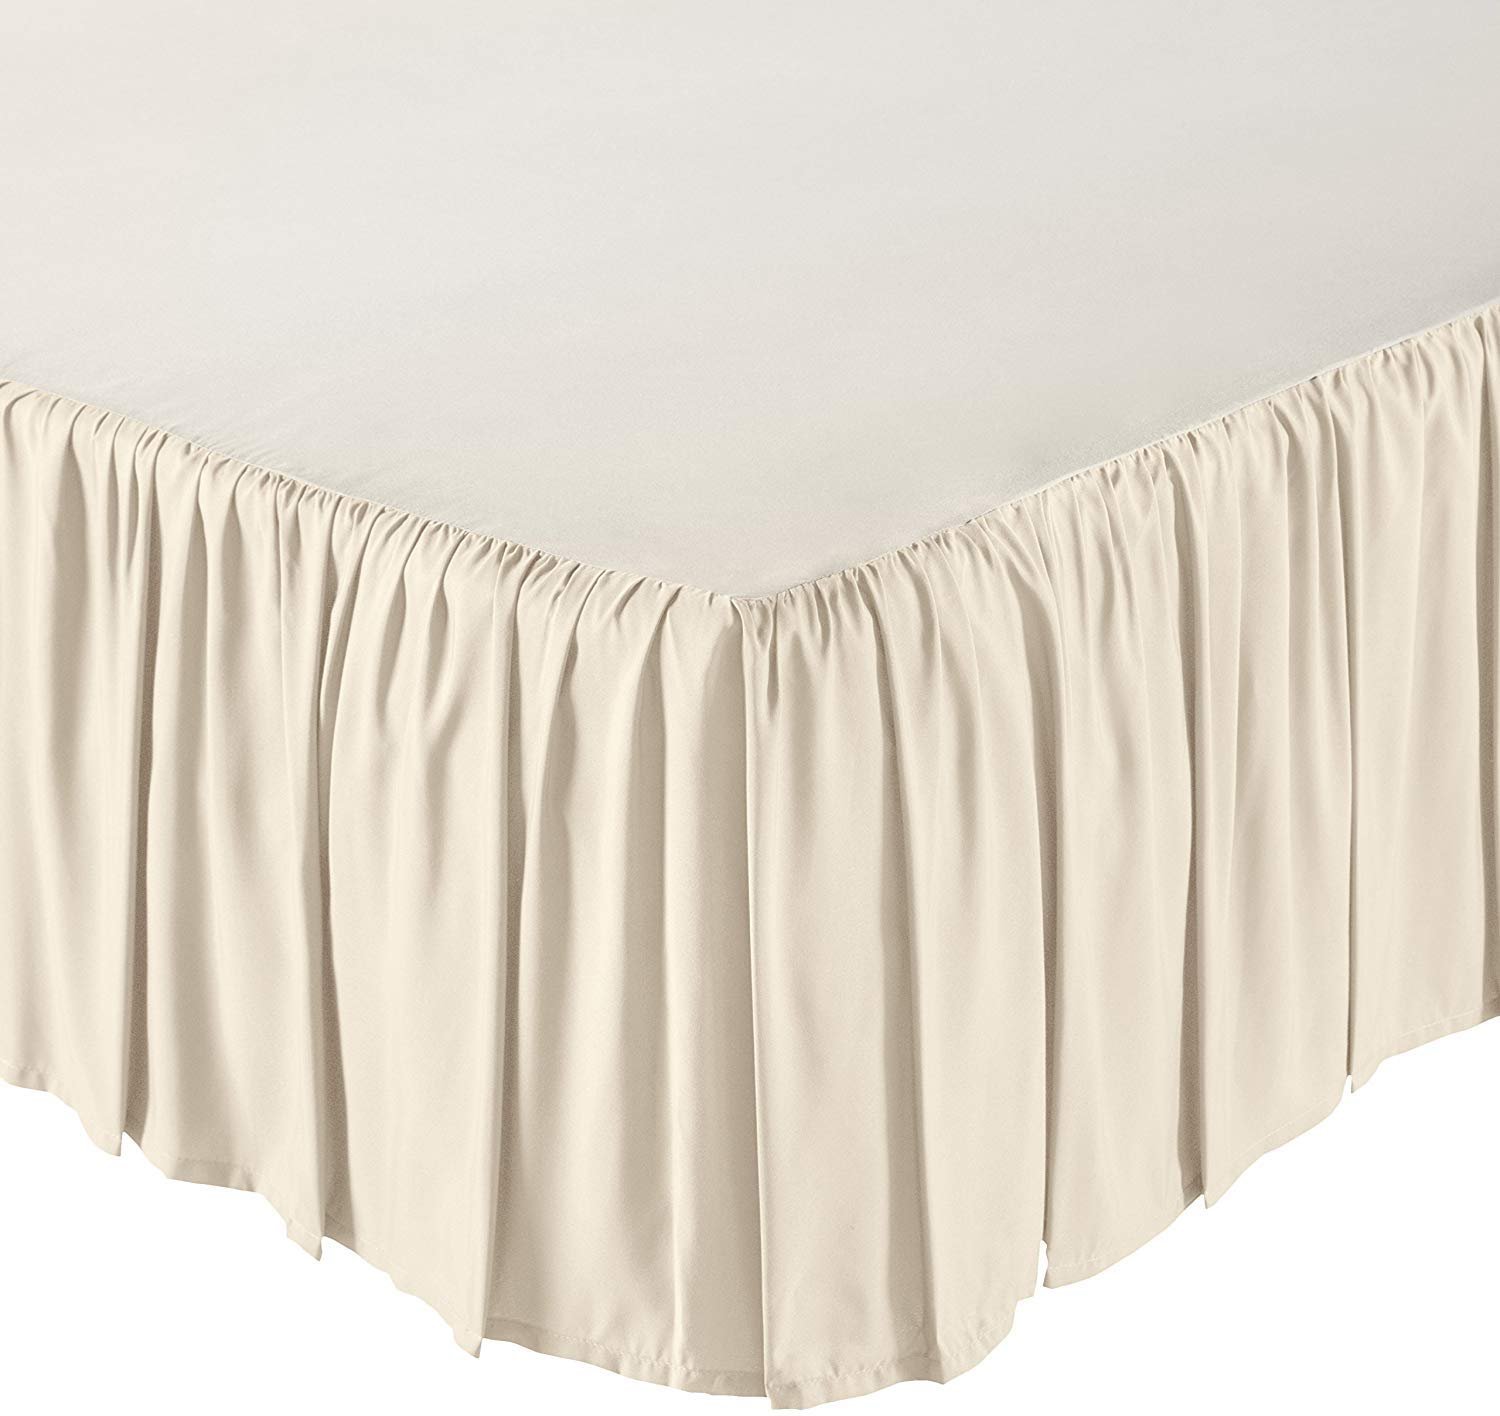 Mattress-Homes Ruffled Bed Skirt- 18 Inch Drop (Queen, Ivory) Dust Ruffle with Platform (Available in All Bed Sizes and Colors) by Mattress-Homes